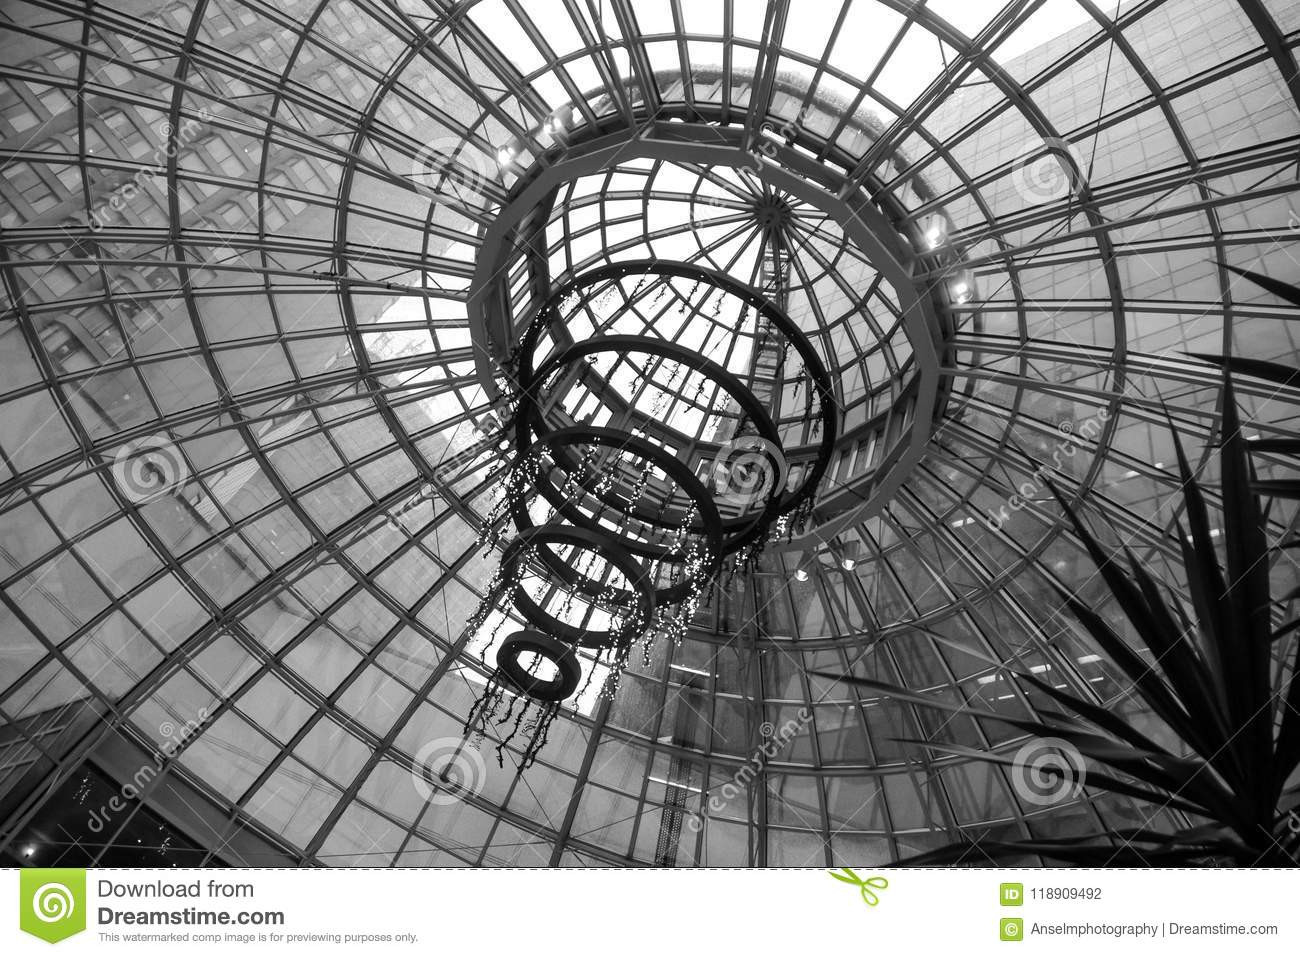 Interestingly Design Glass Dome Ceiling Of A Building In Vancouver Downtown In Black and White